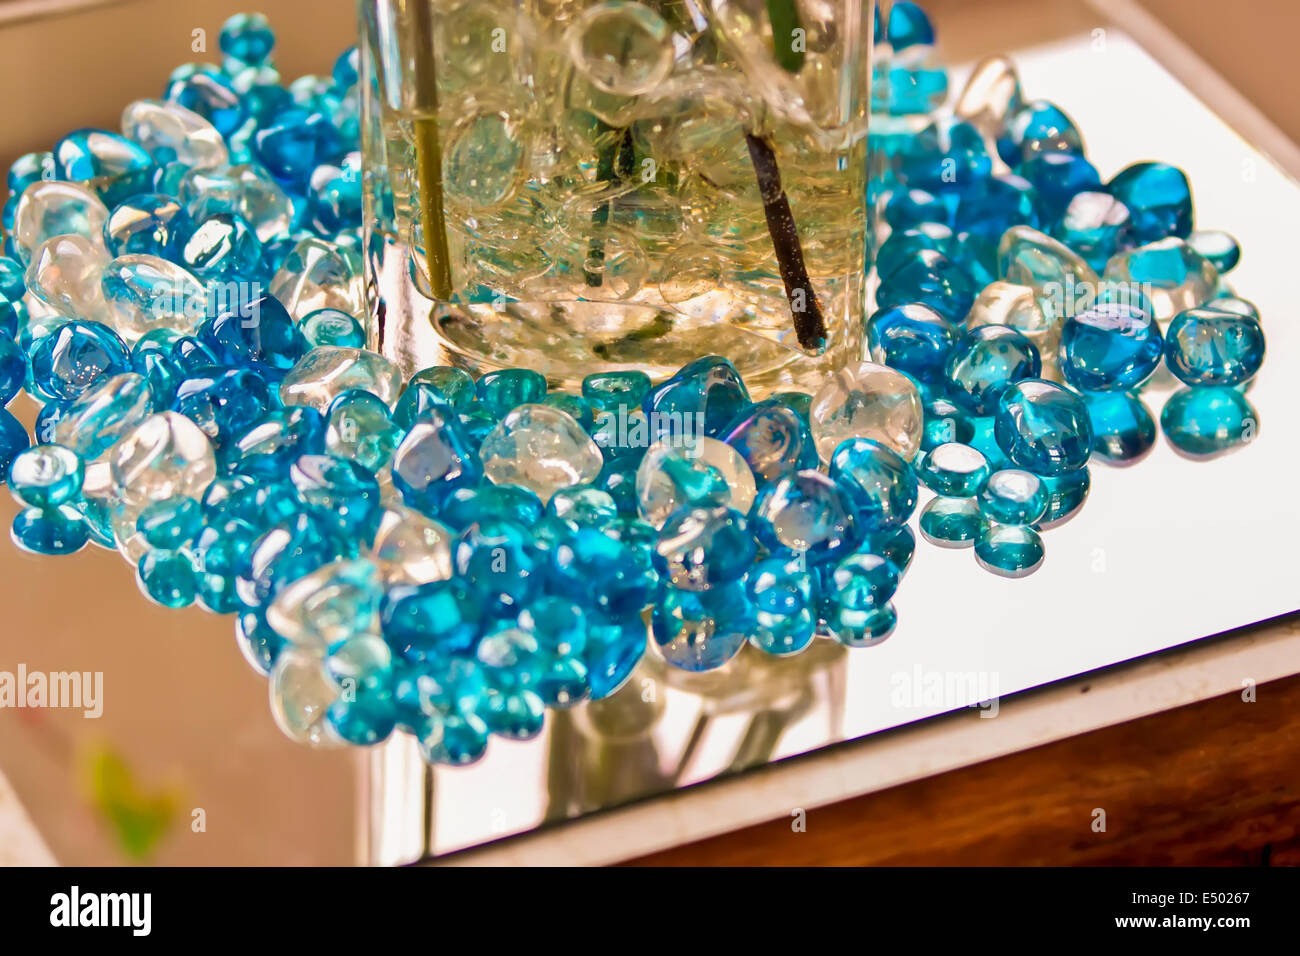 blue marbles on a reflective surface Stock Photo